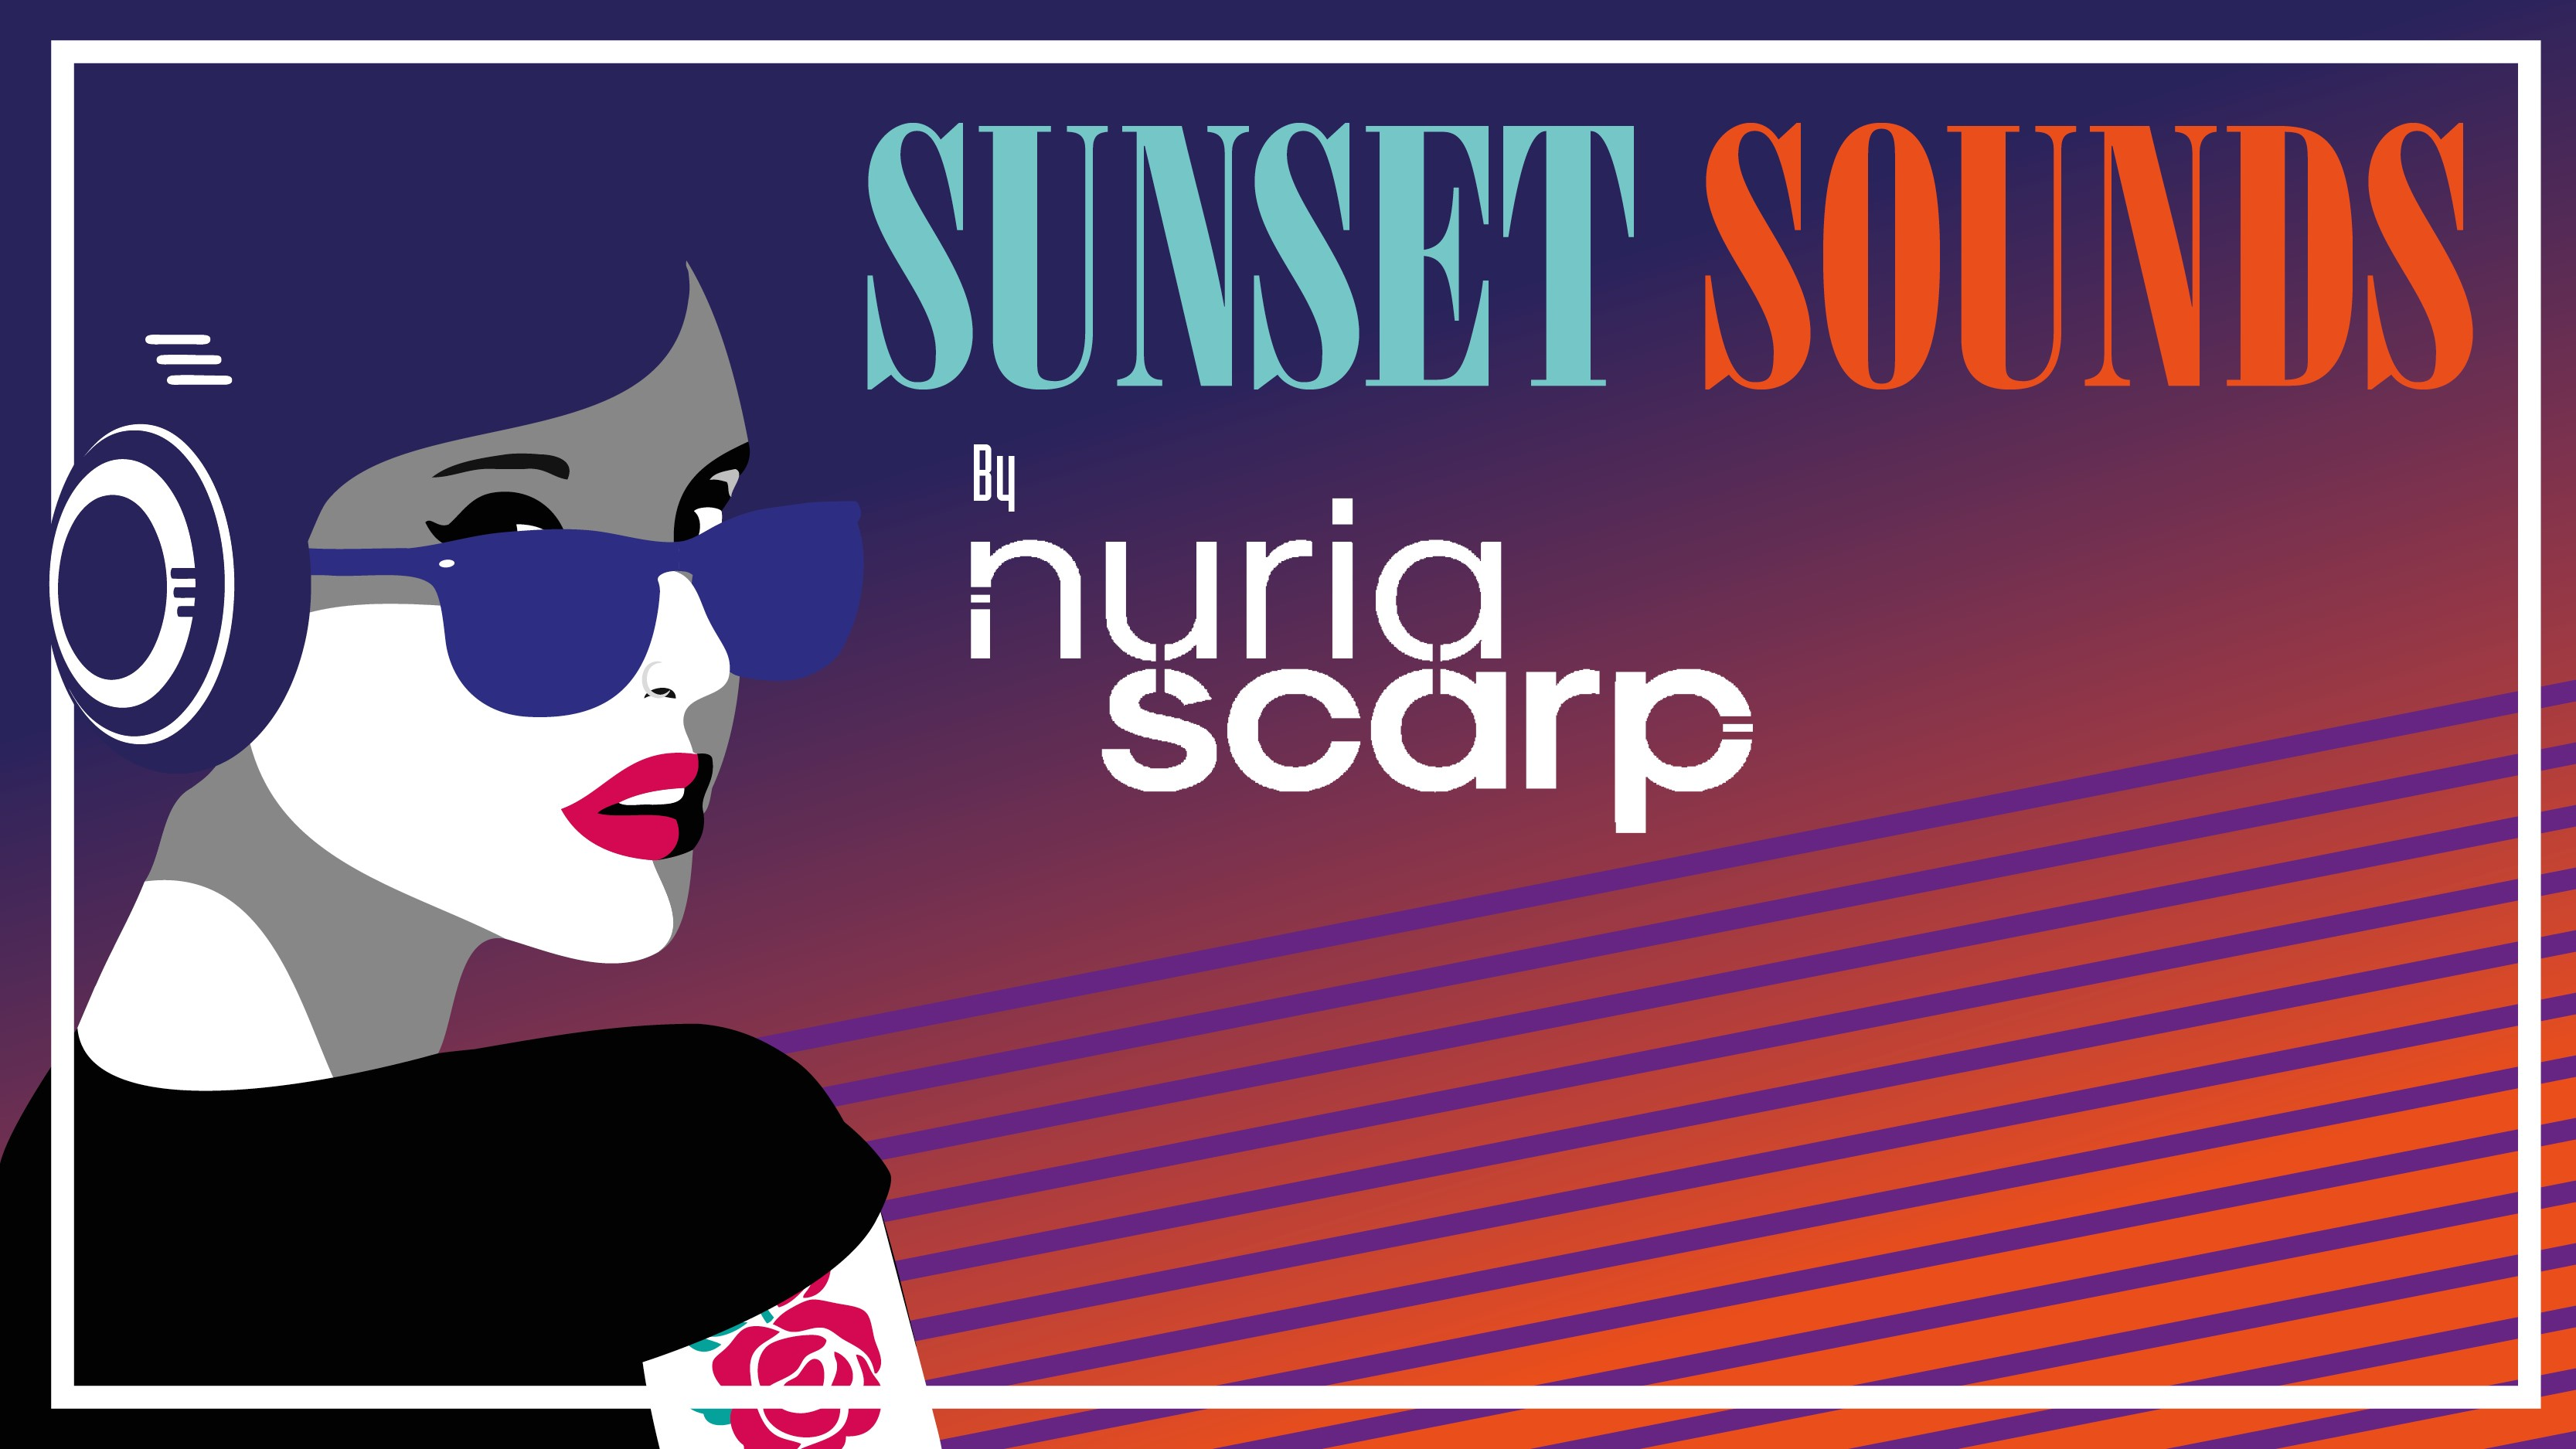 Sunset sounds amb Dj Nuria Scarp